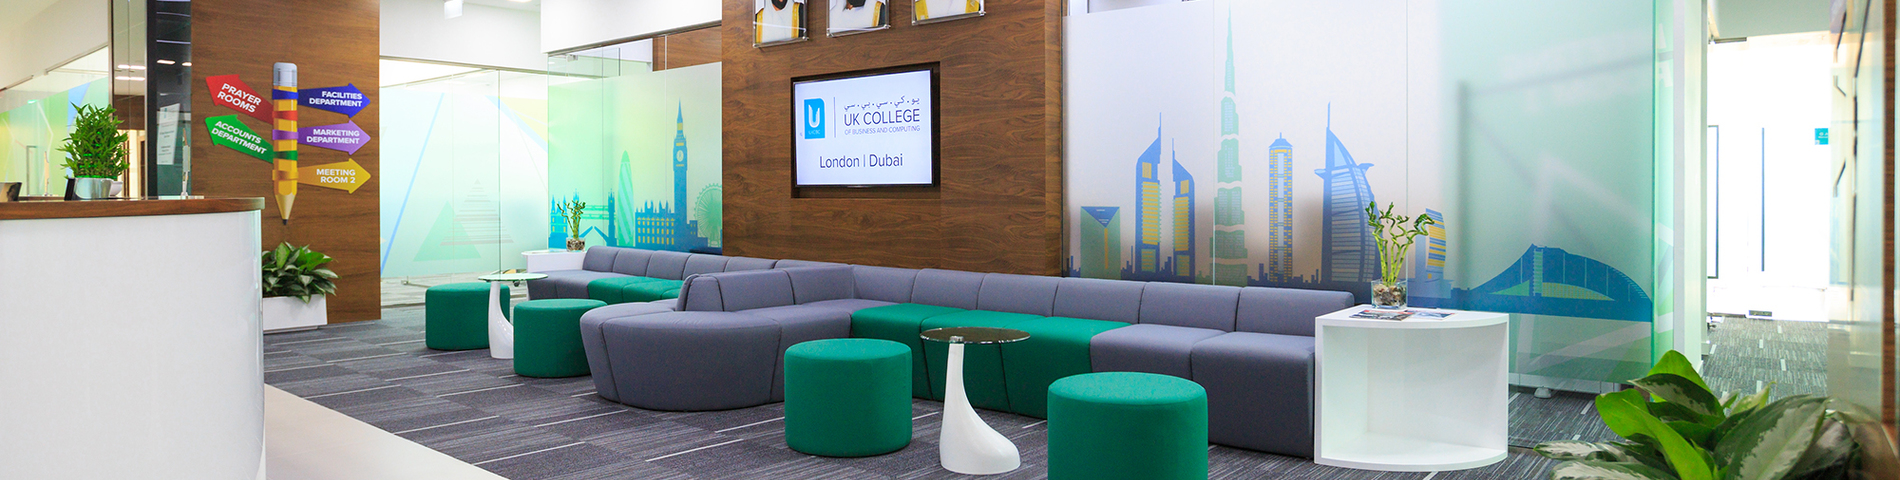 UK College of Business and Computing foto 1